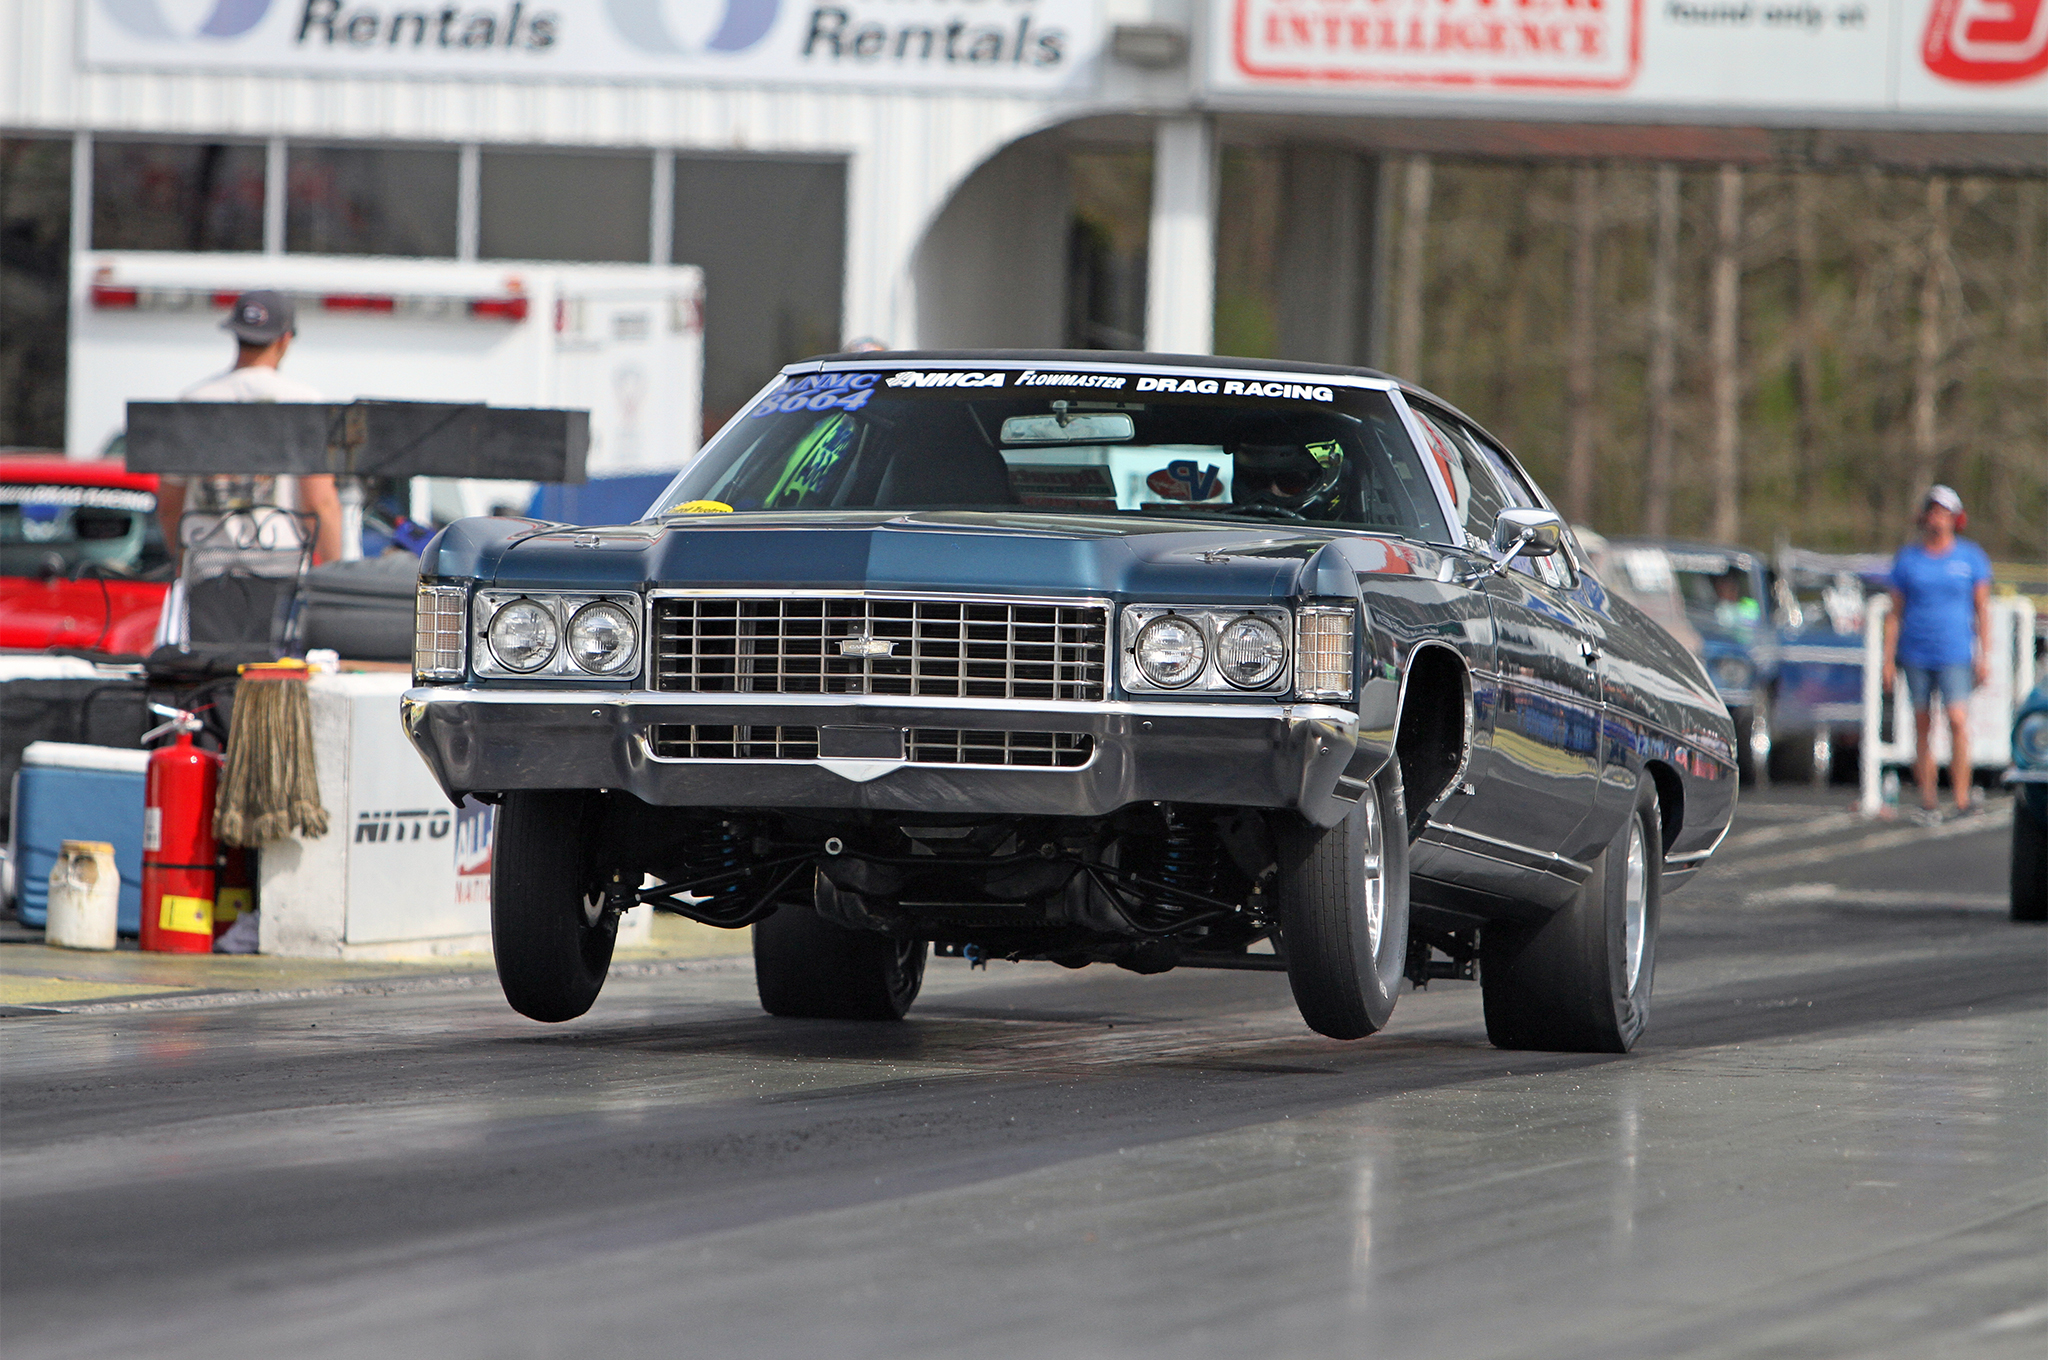 The most successful NMCA racer, in round wins, is Andy Warren and his 1971 Chevy Caprice. He will be shifting categories in 2015, leaving the index-style Nostalgia Muscle Car class and making his way into CP Stock. Though, sadly, his Caprice won't be making the journey into the heads-up world. A tThird-gen F-body is slated to go under the knife this winter for next season's race car.